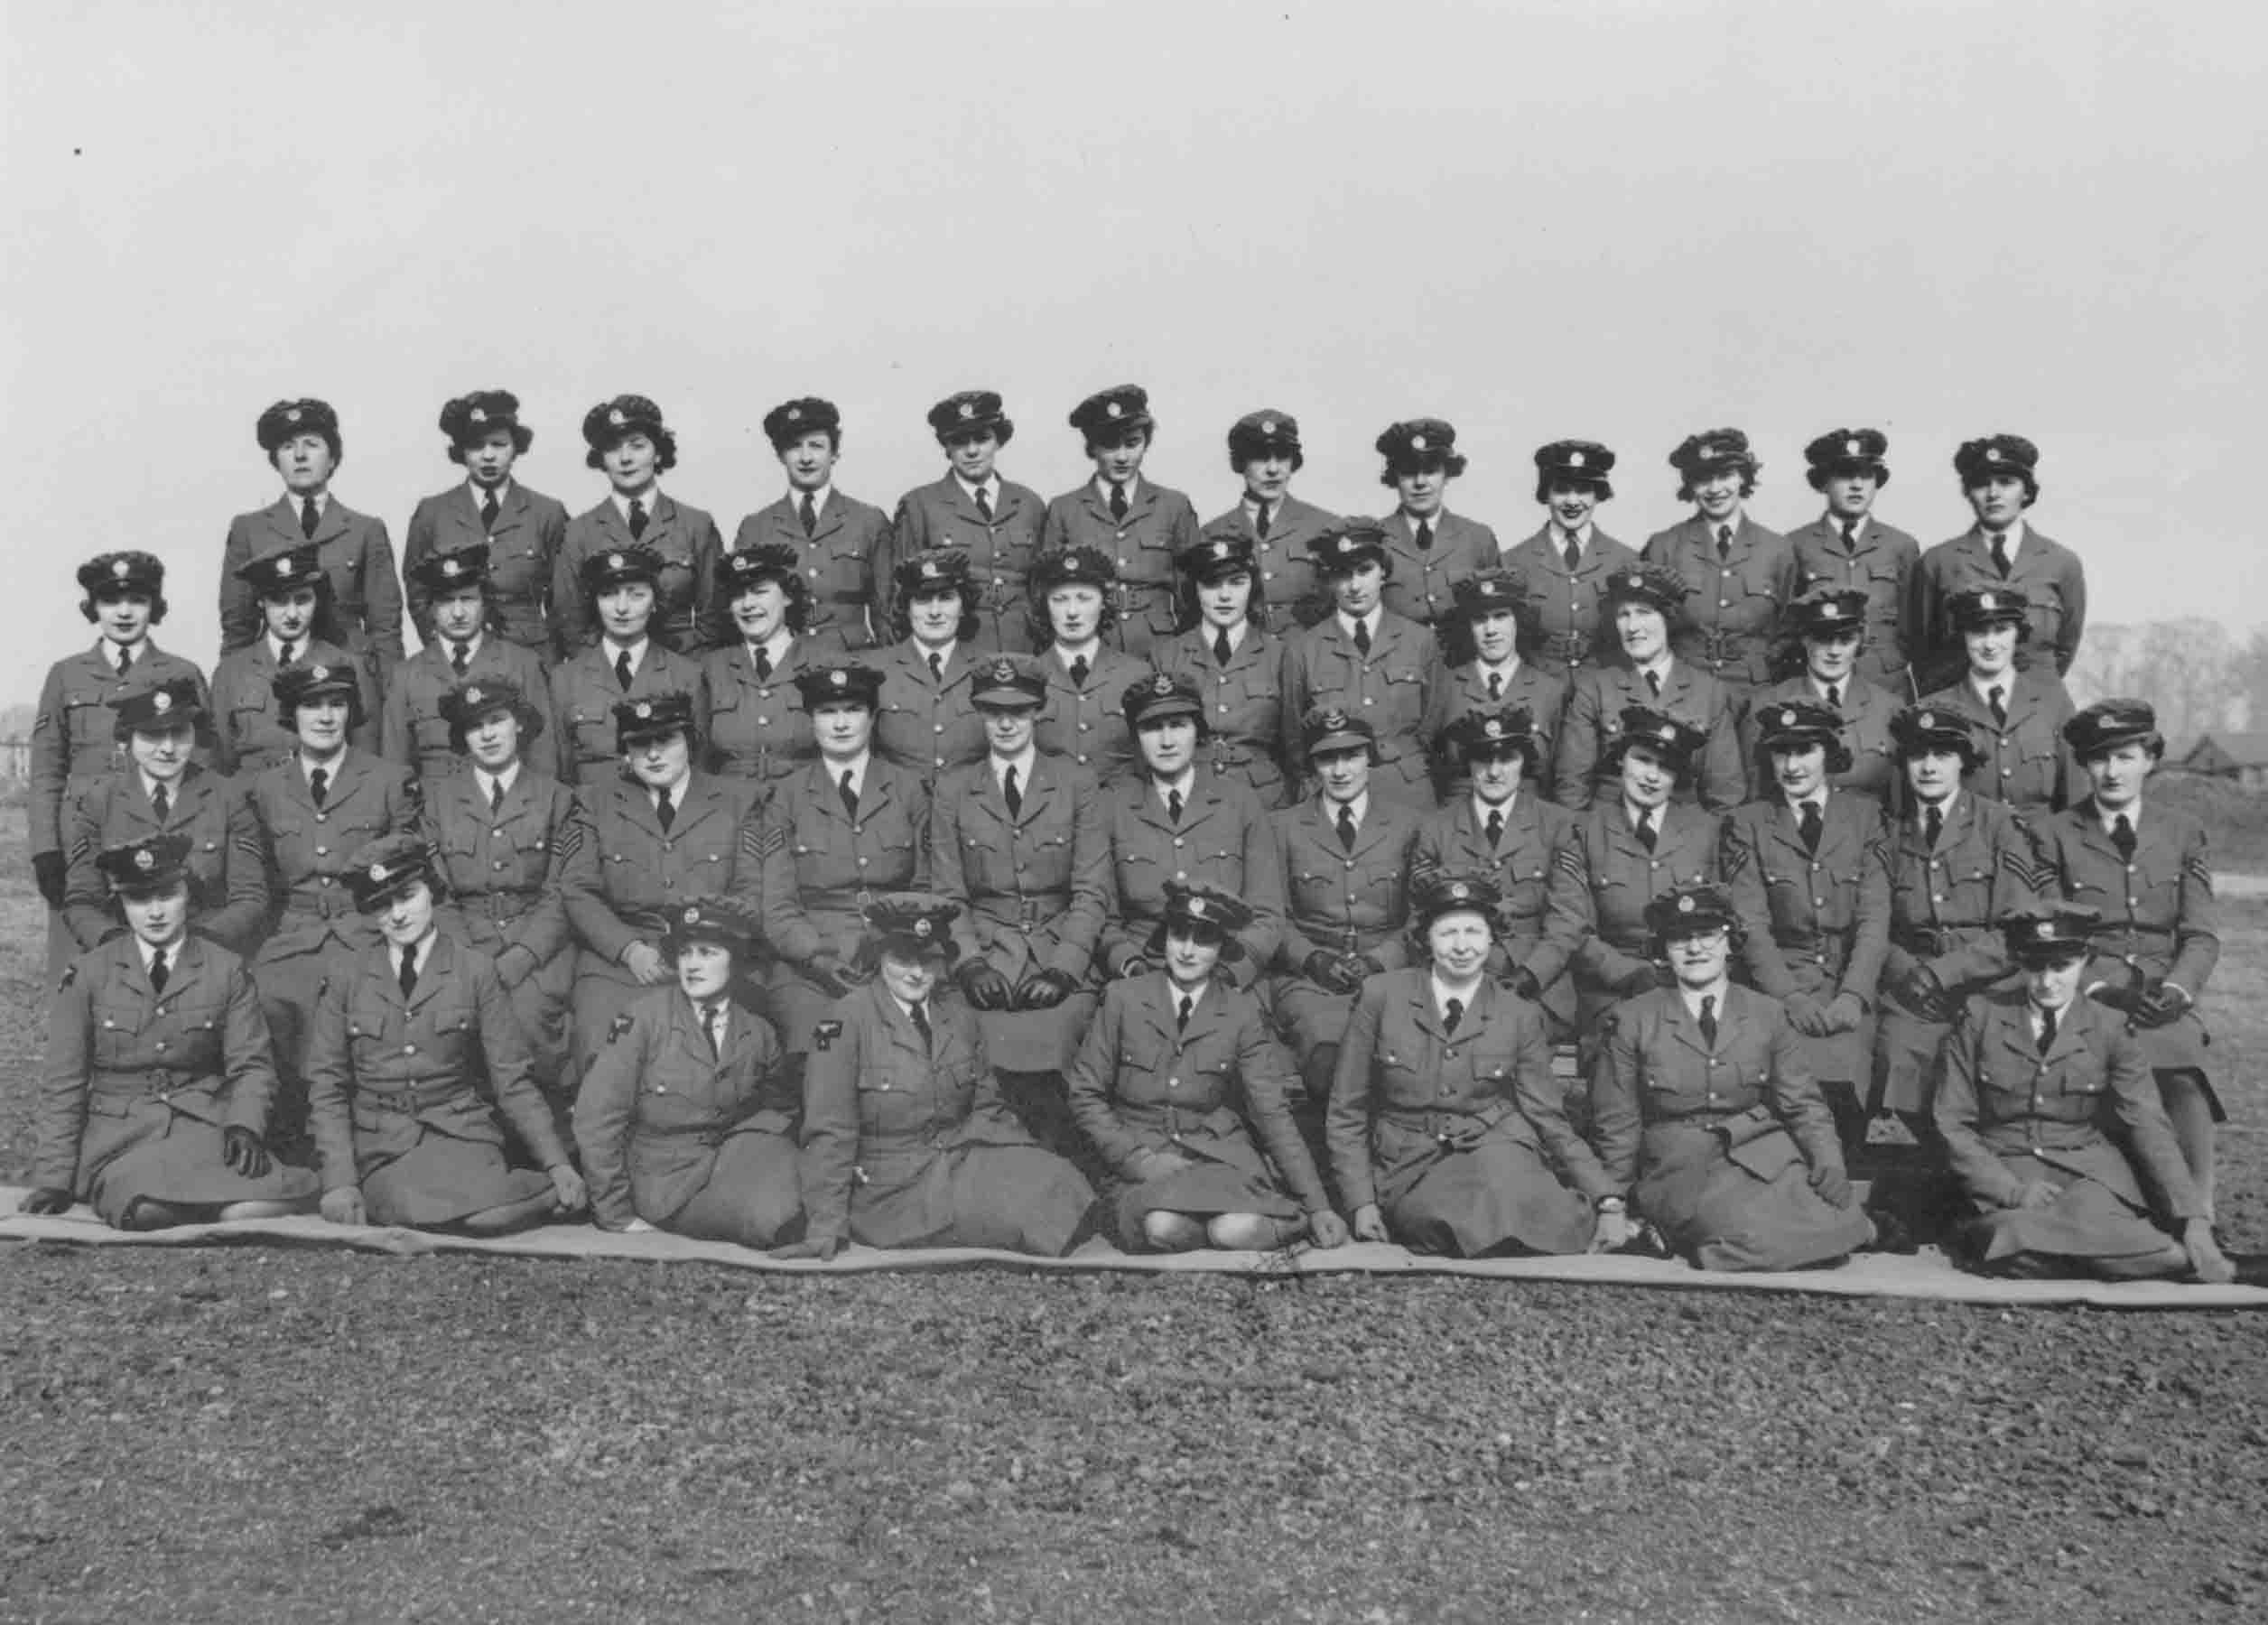 The first year for the WAAF was a challenging one while it not only established itself as an organisation but also as one of value to the RAF during wartime. The experiences of those who served were varied but sharing difficult experiences can help to form strong bonds. By the time the WAAF had its first birthday a 'esprit de corps' within the WAAF had been created which would be crucial in the years to come.